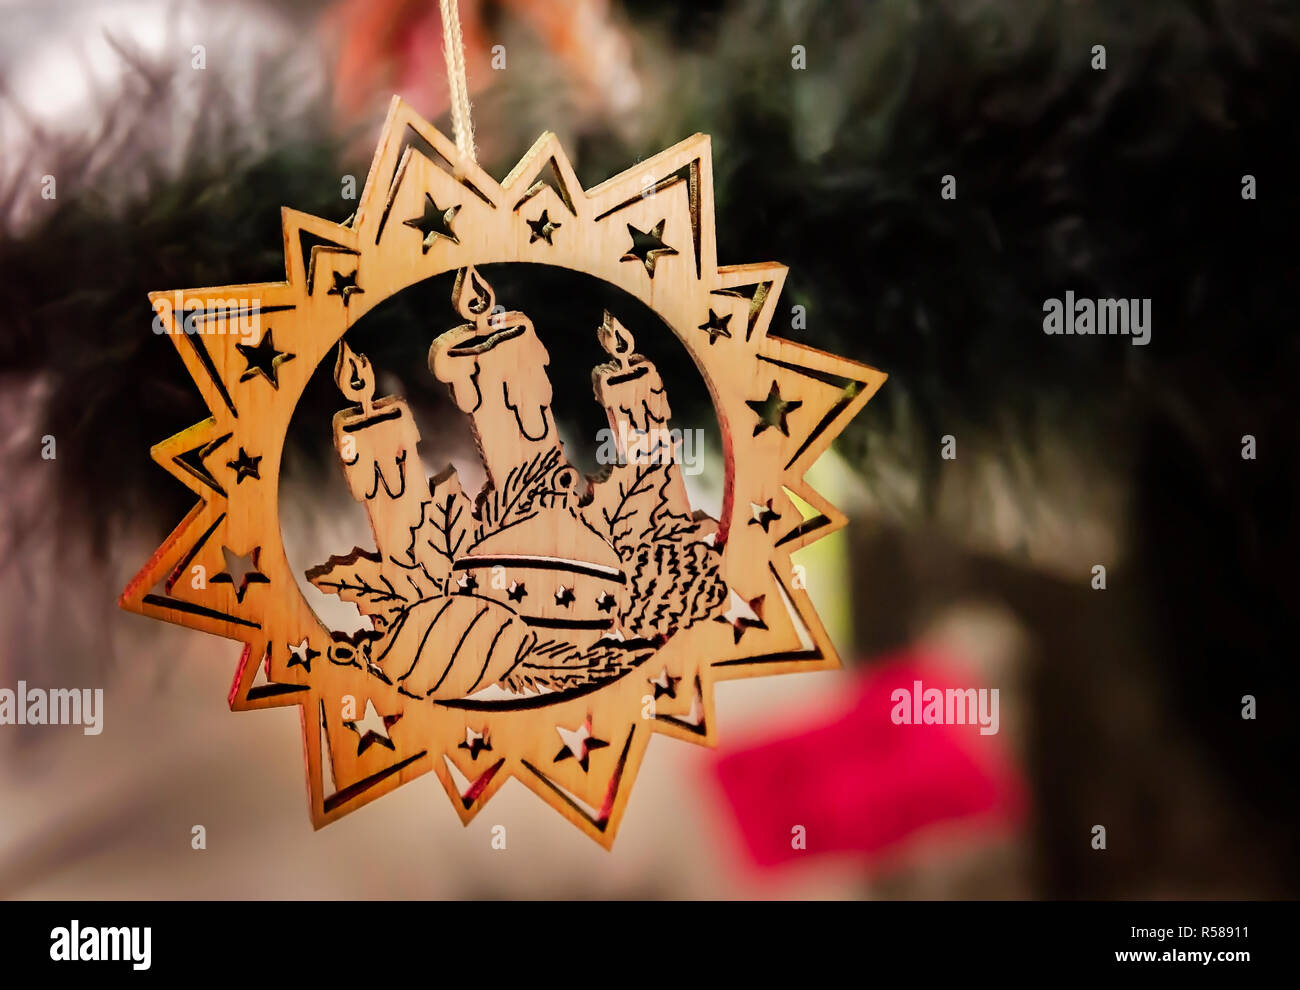 A wooden Christmas ornament from the Czech Republic is displayed at the 34th annual Mobile International Festival, Nov. 17, 2018, in Mobile, Alabama.  - Stock Image